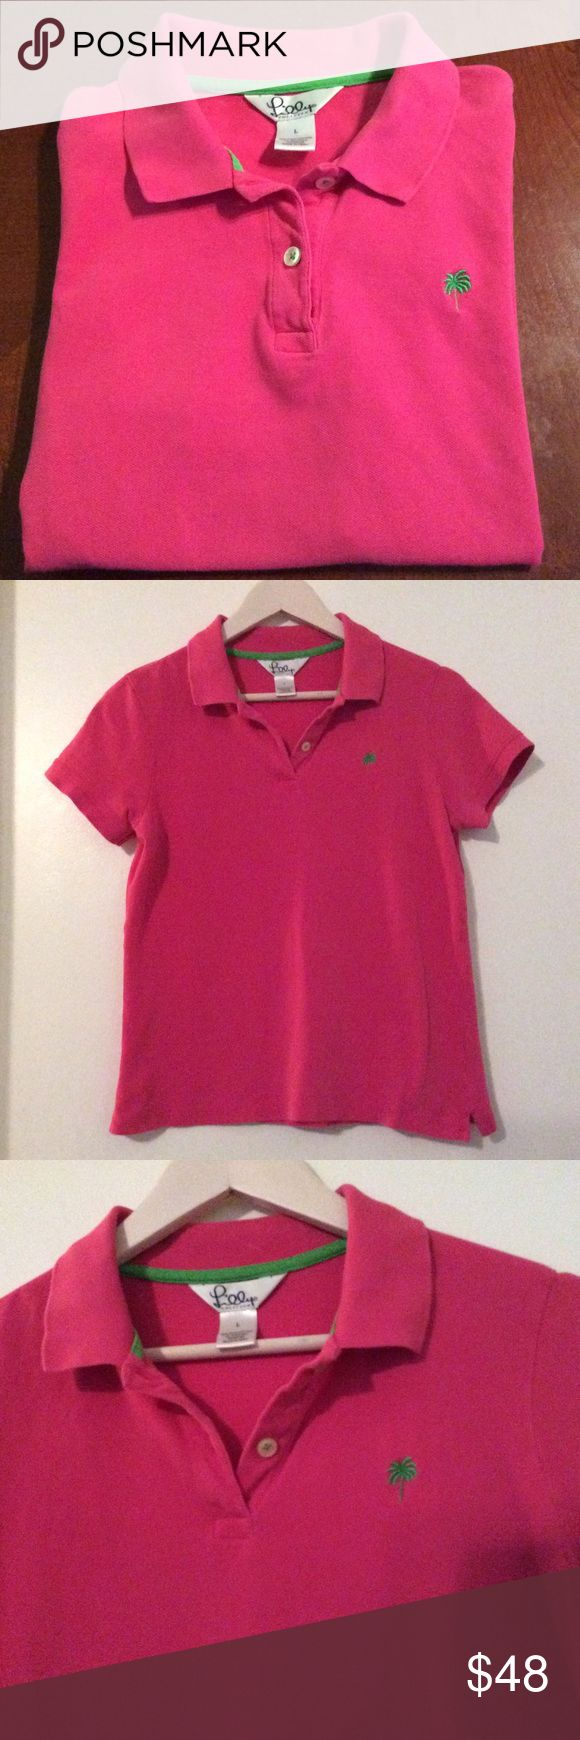 Lilly Pulitzer Hot Pink Polo Style Shirt Lilly Pulitzer hot pink polo style 2-button shirt. Perfect & cheerful for Spring & Summer. Lilly Pulitzer Tops